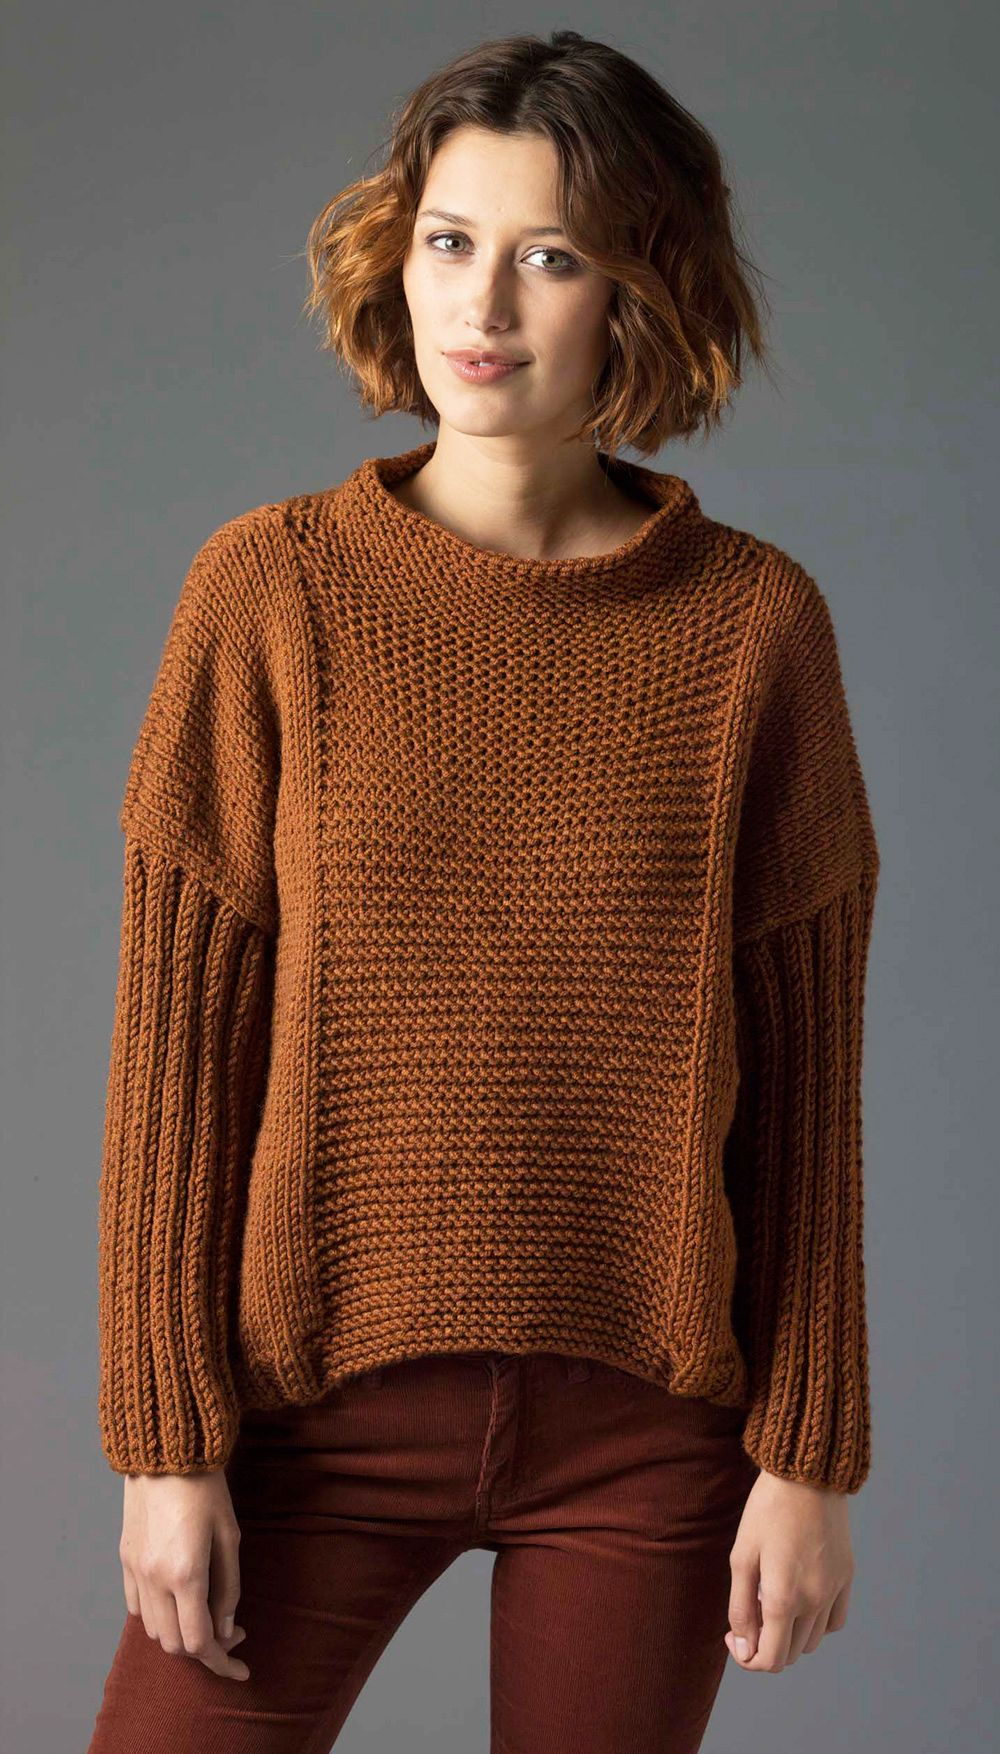 Knitting Patterns Sweater : Easy knit pullover lion brand free pdf pattern